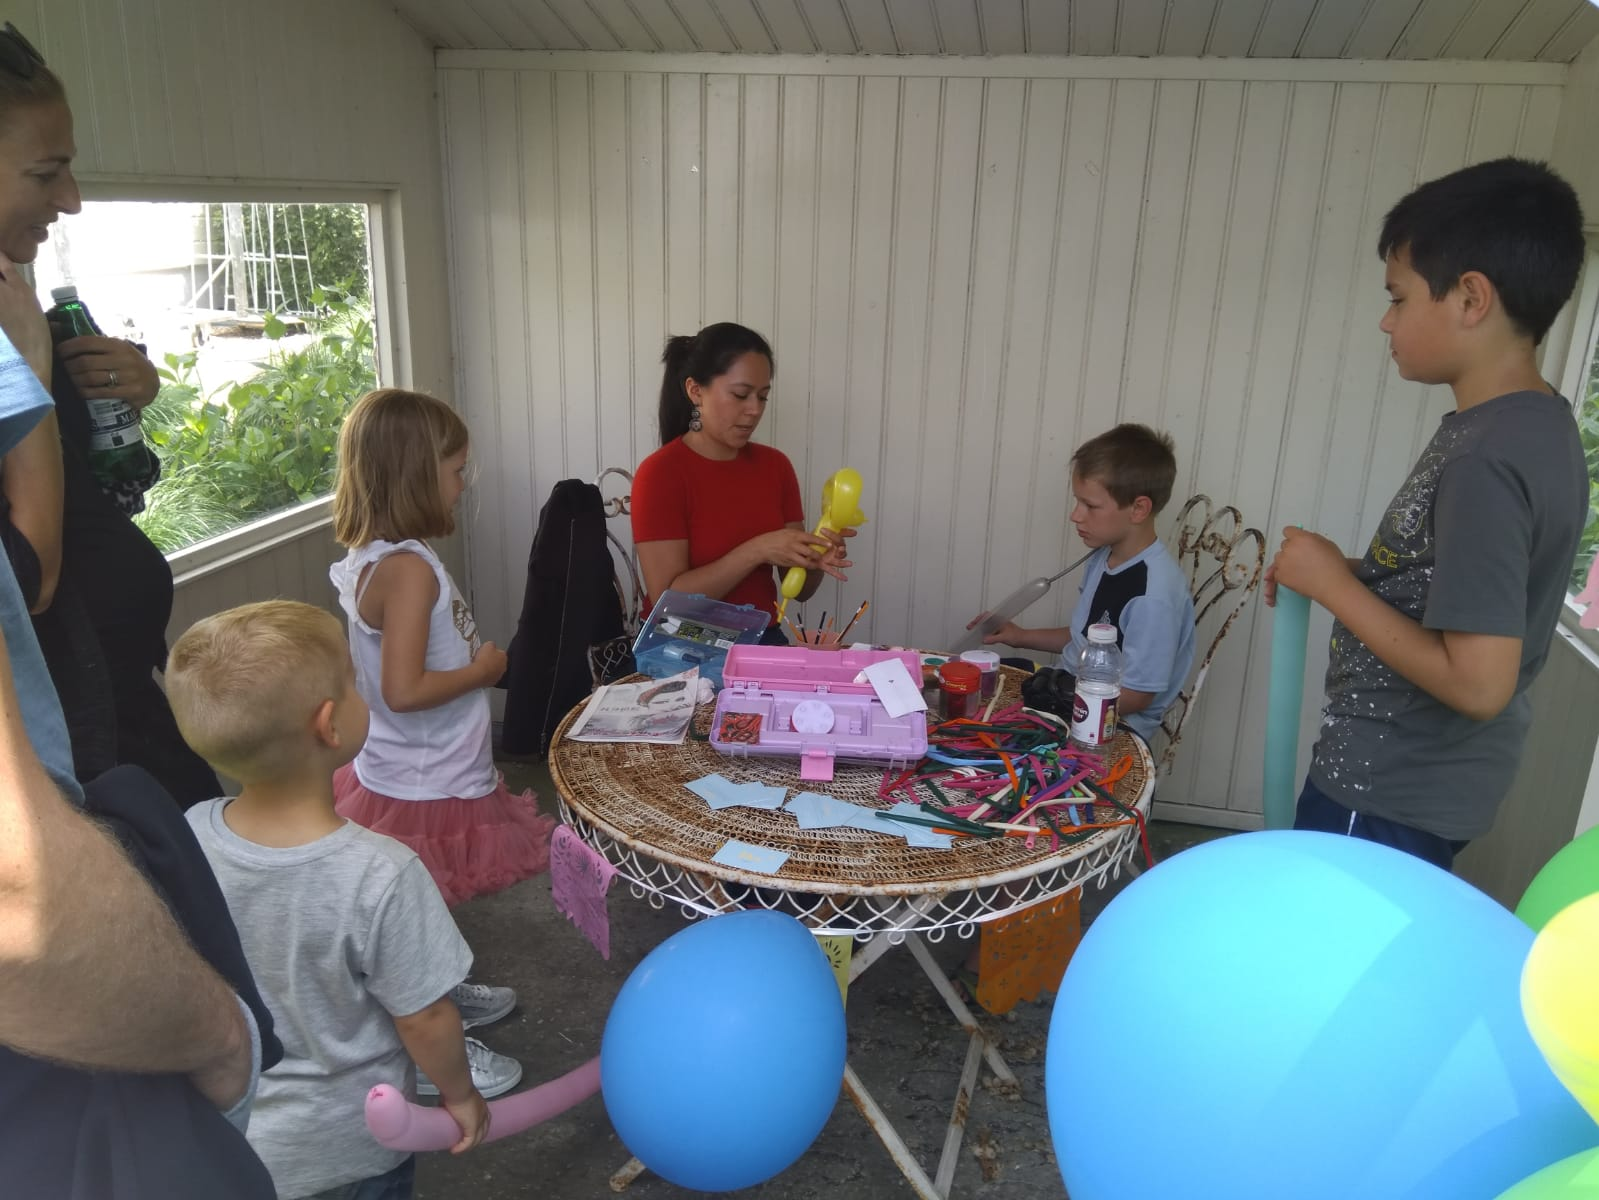 Kids party amsterdam